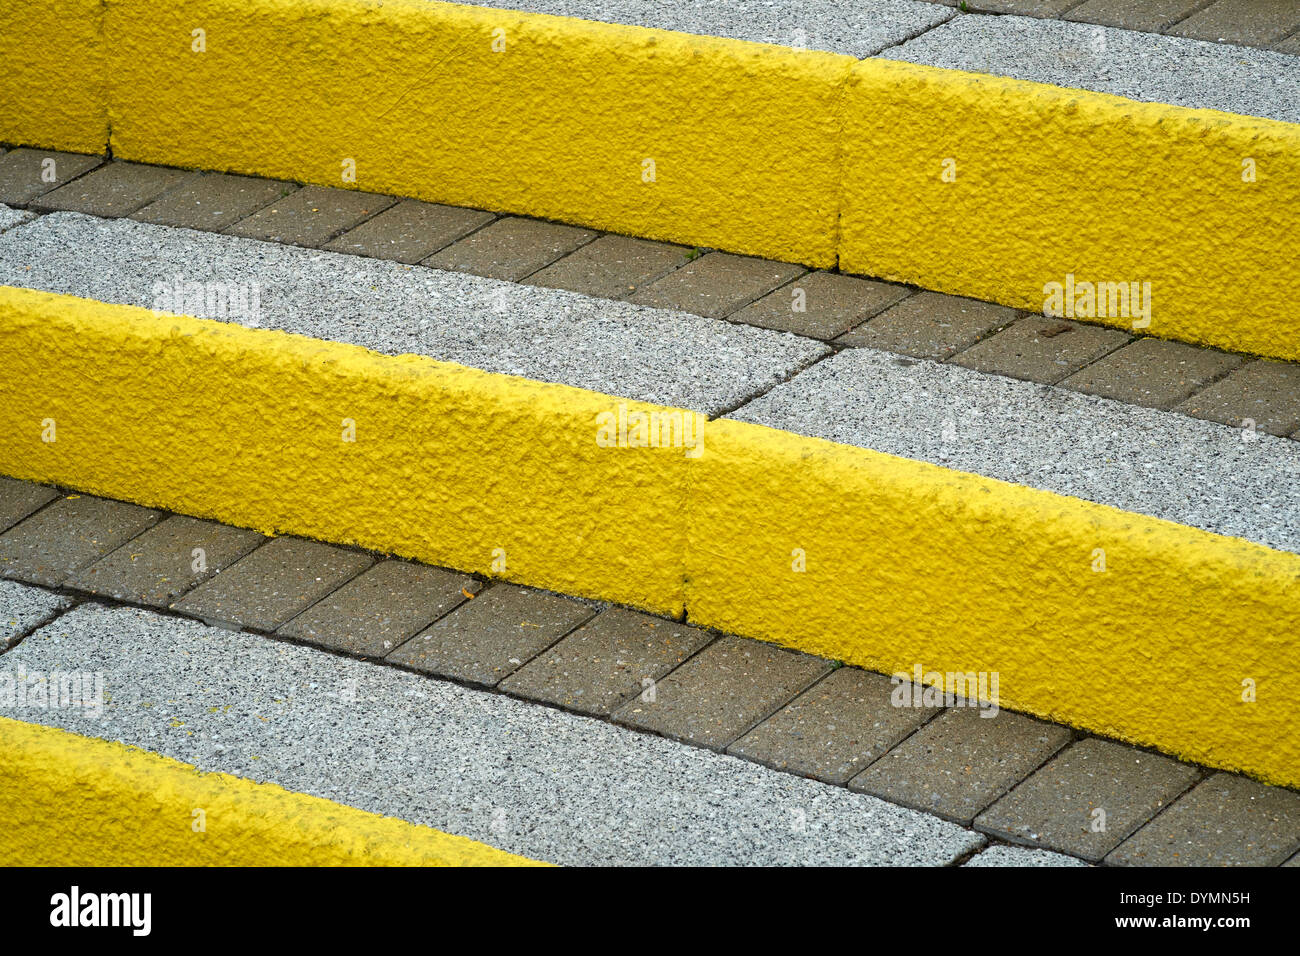 Yellow Painted Steps Stock Photos & Yellow Painted Steps Stock ...